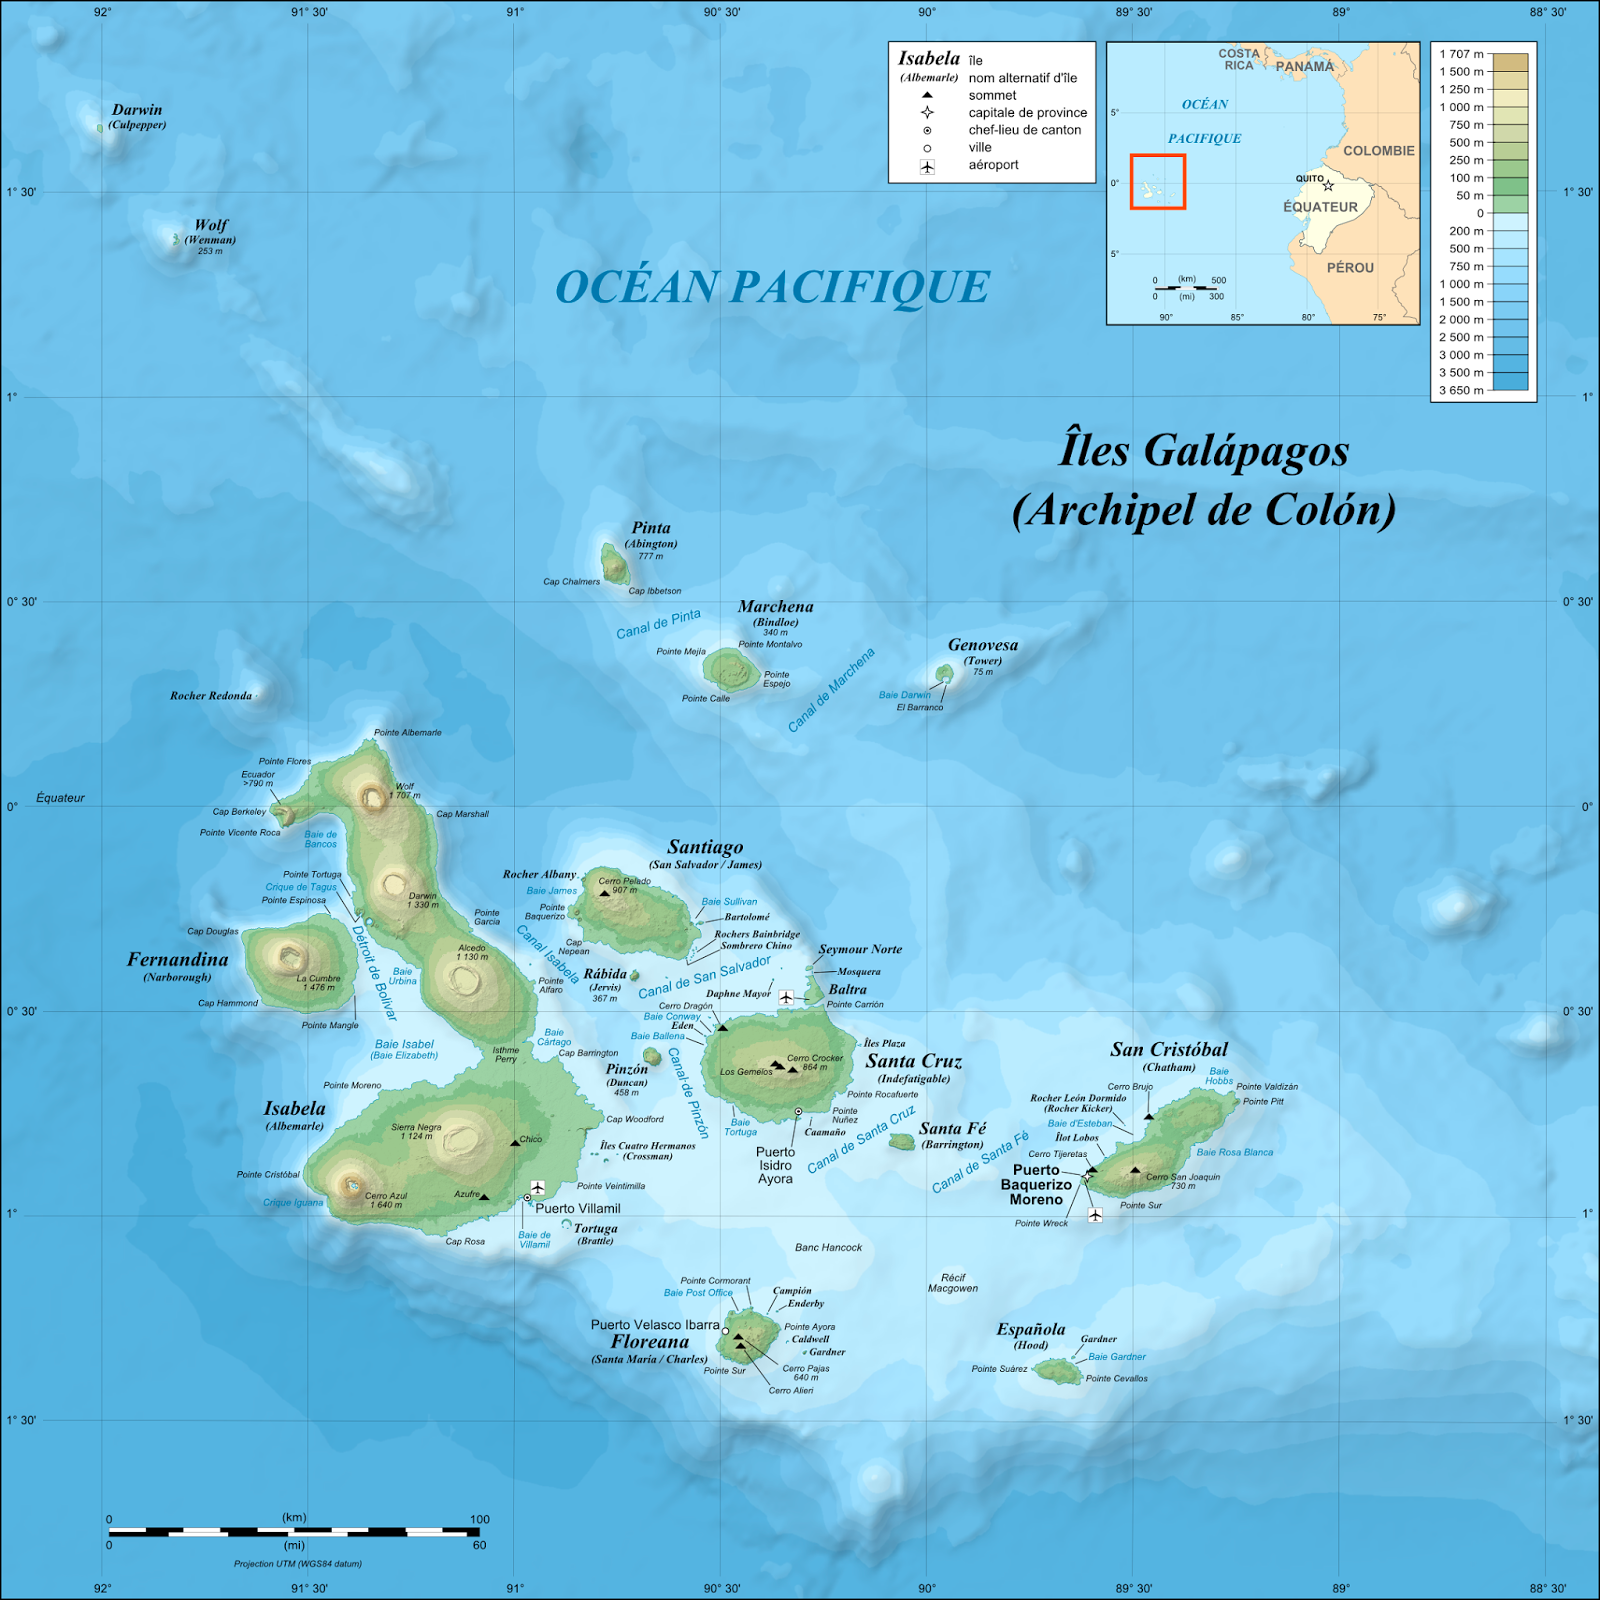 an image of the galapagos islands and their topography image from wikimedia commons